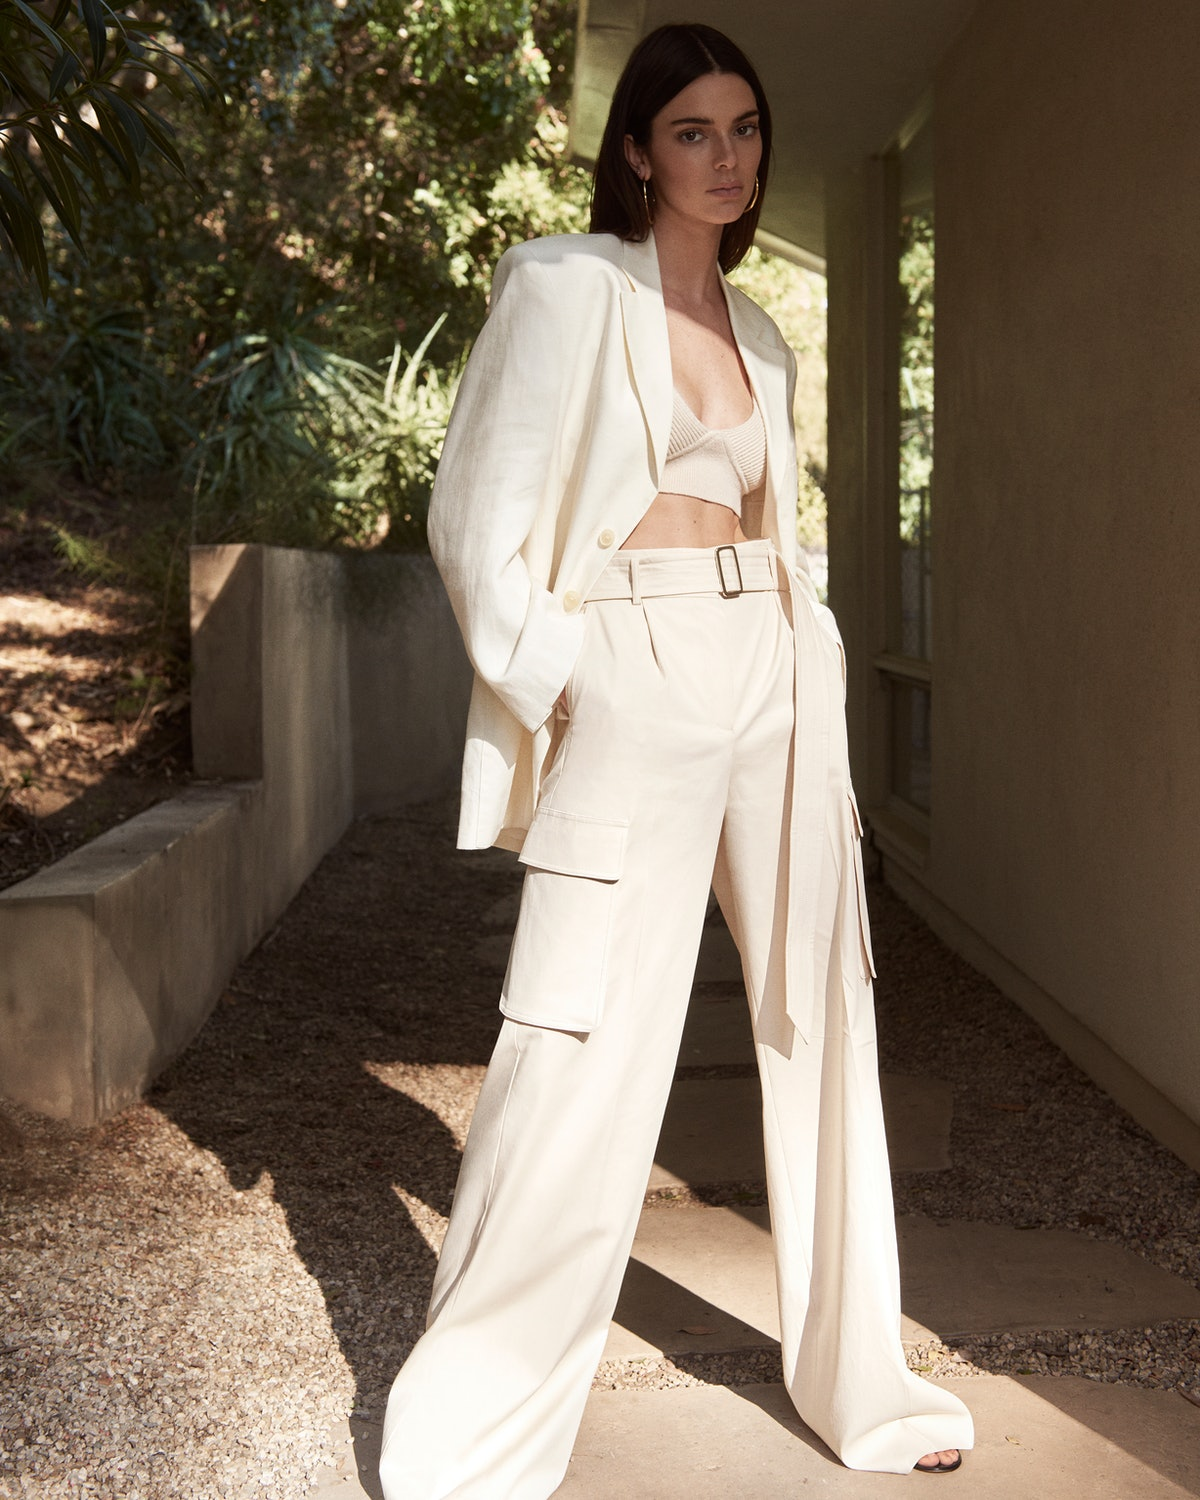 Kendall Jenner wears oversize blazer and pants in her new campaign for FWRD.